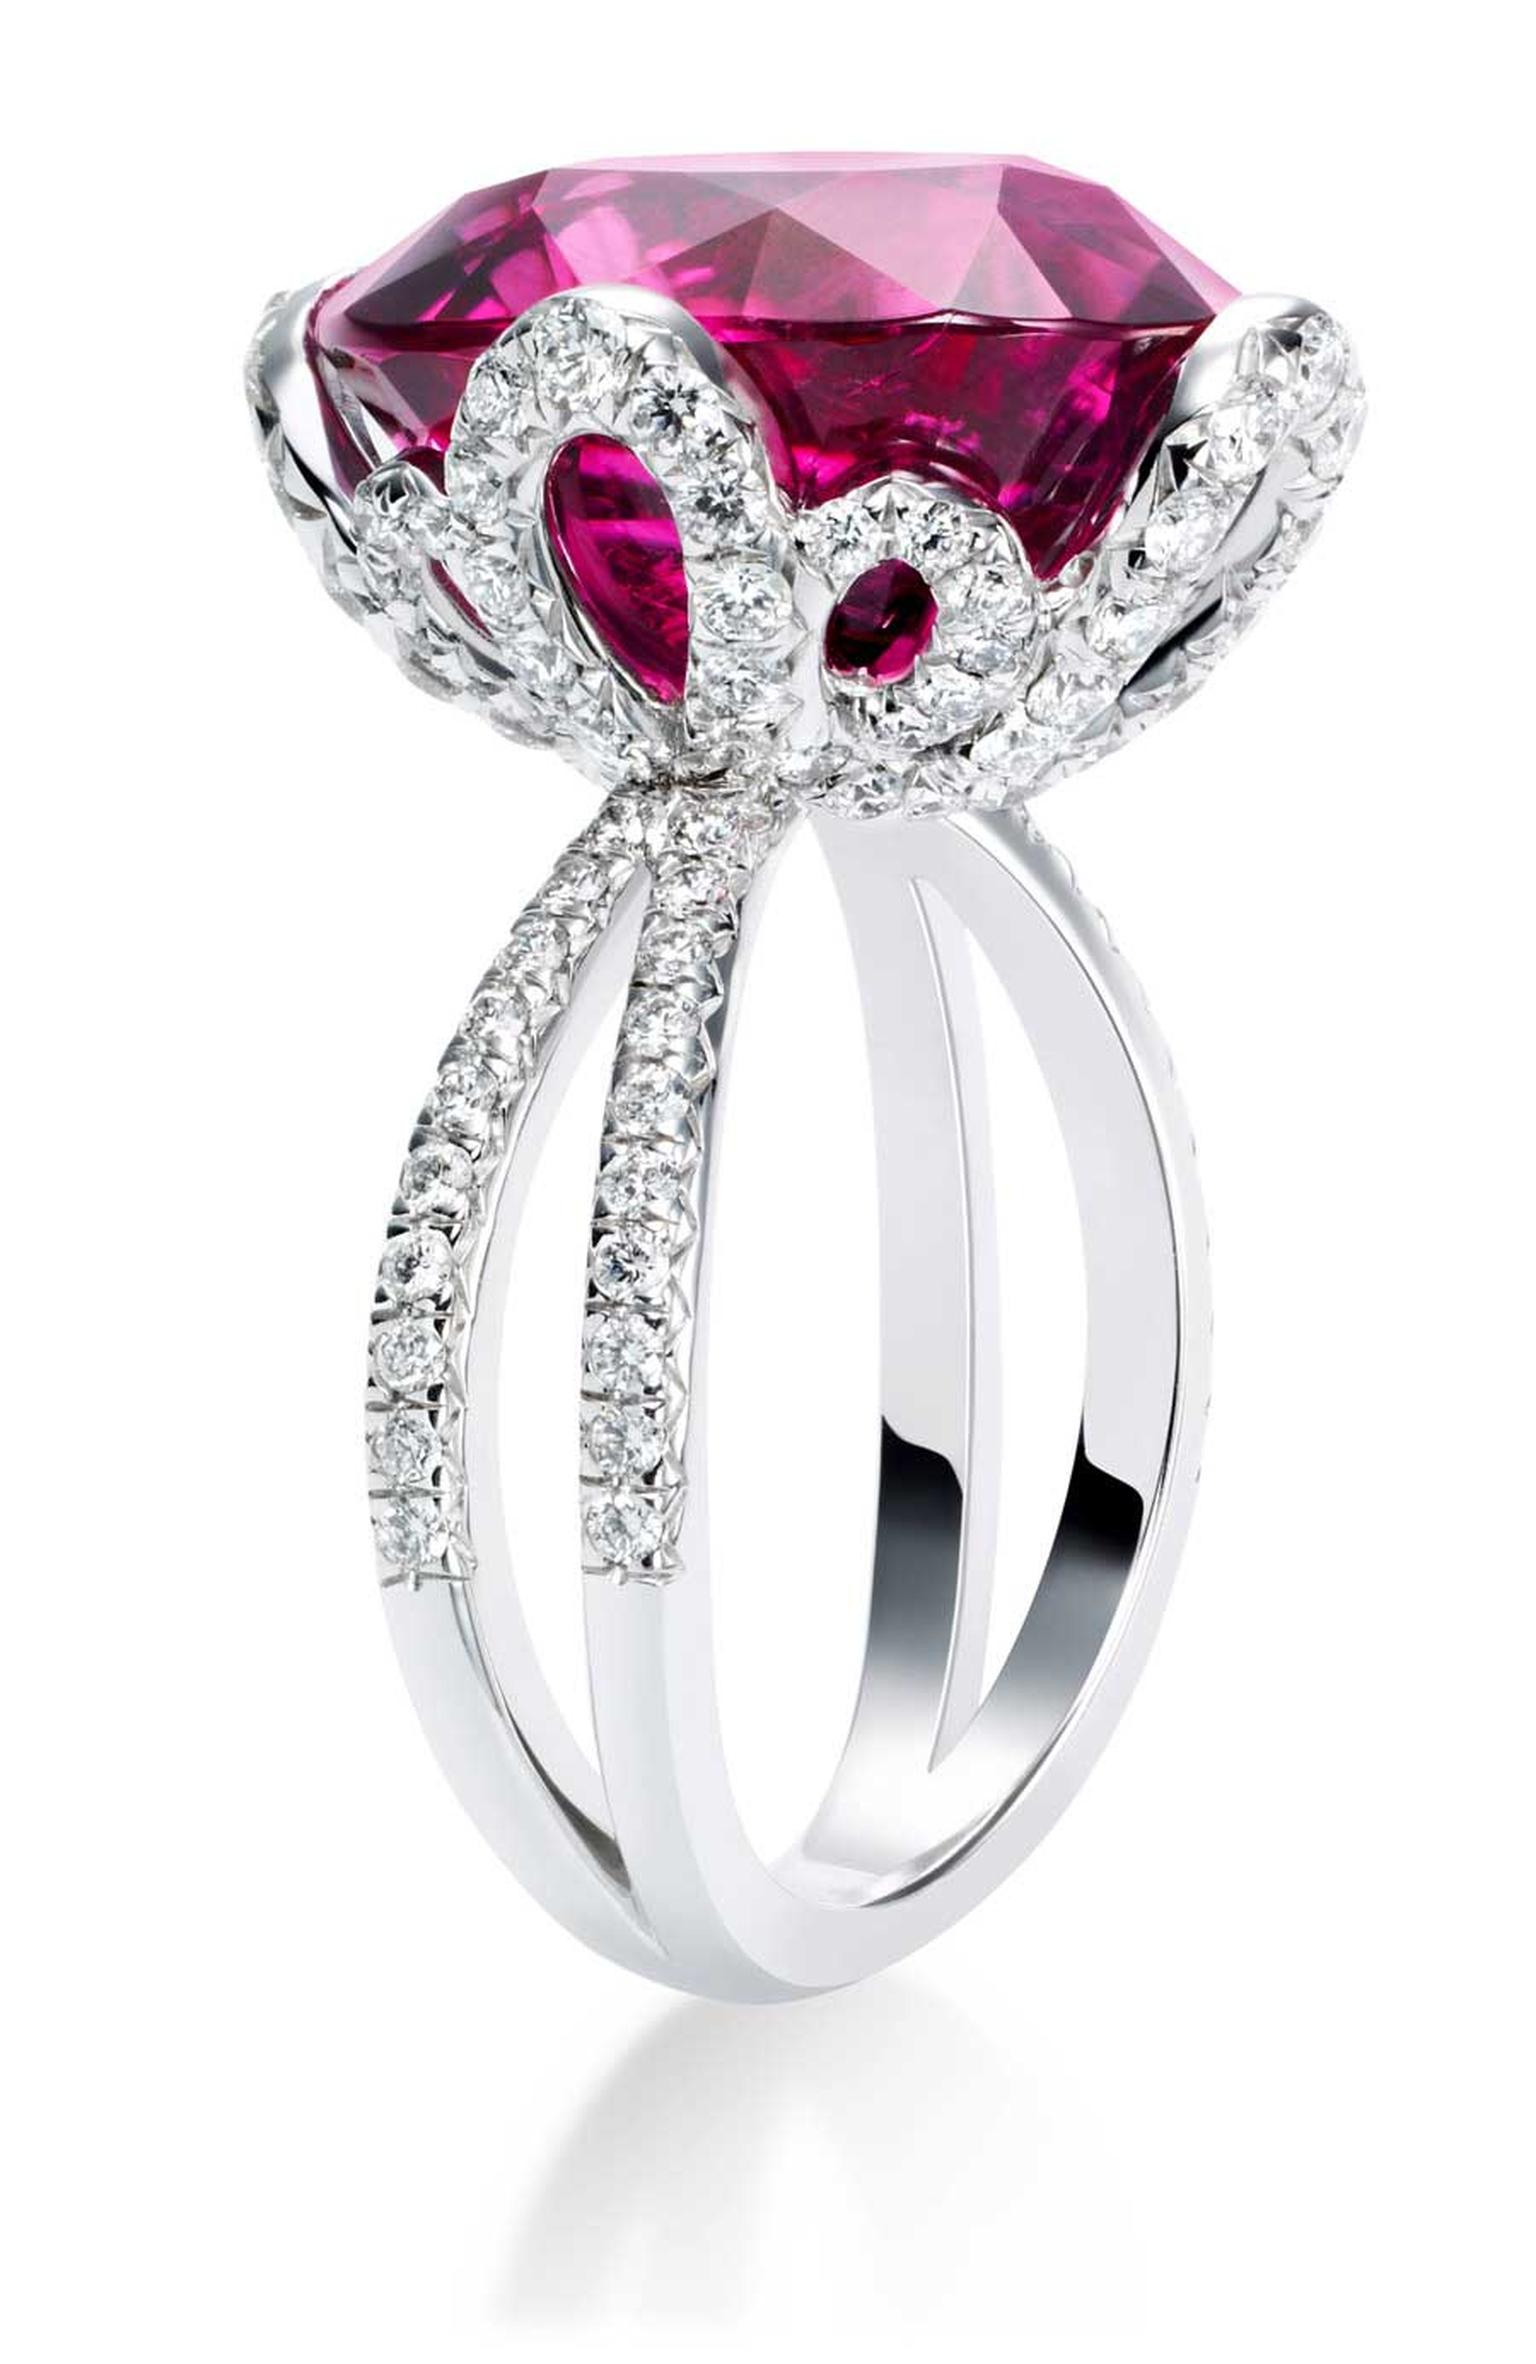 Piaget Couture Pre´cieuse gold ring featuring 1 oval-cut rubellite (approx. 13.23 cts) and 120 brilliant-cut diamonds.